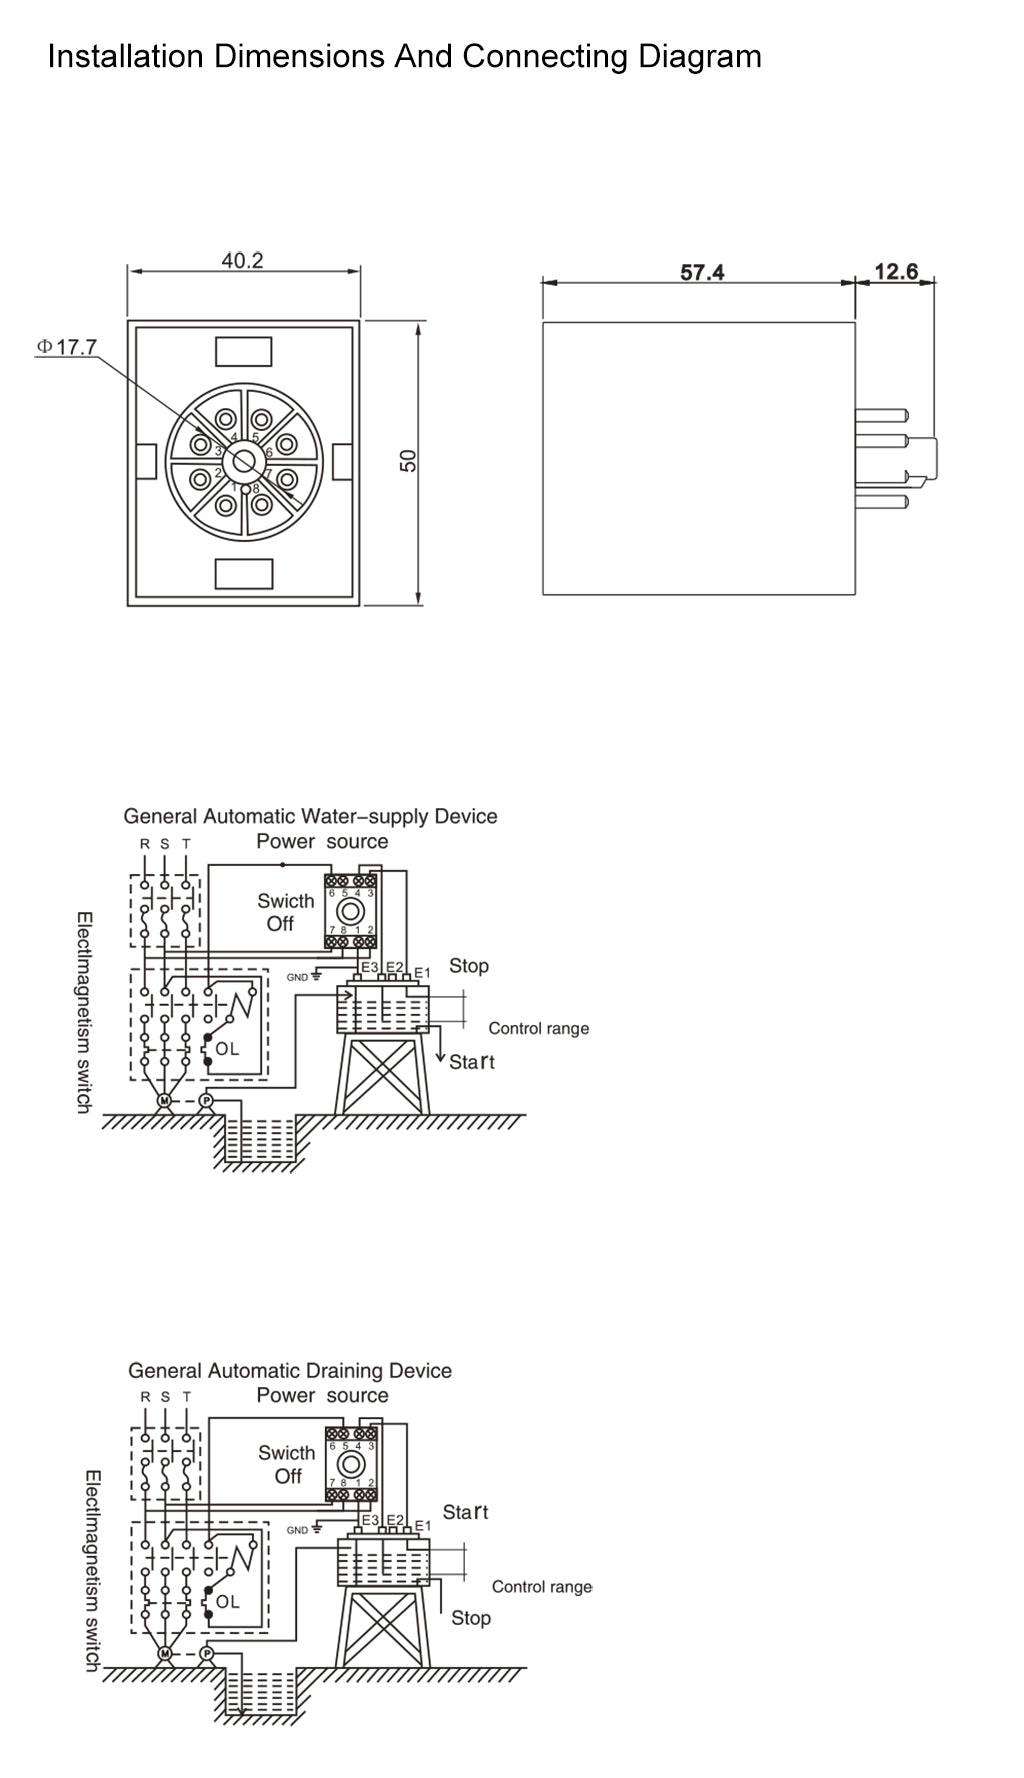 Floatless Relay-LAF Installation Dimensions and Connecting Diagram